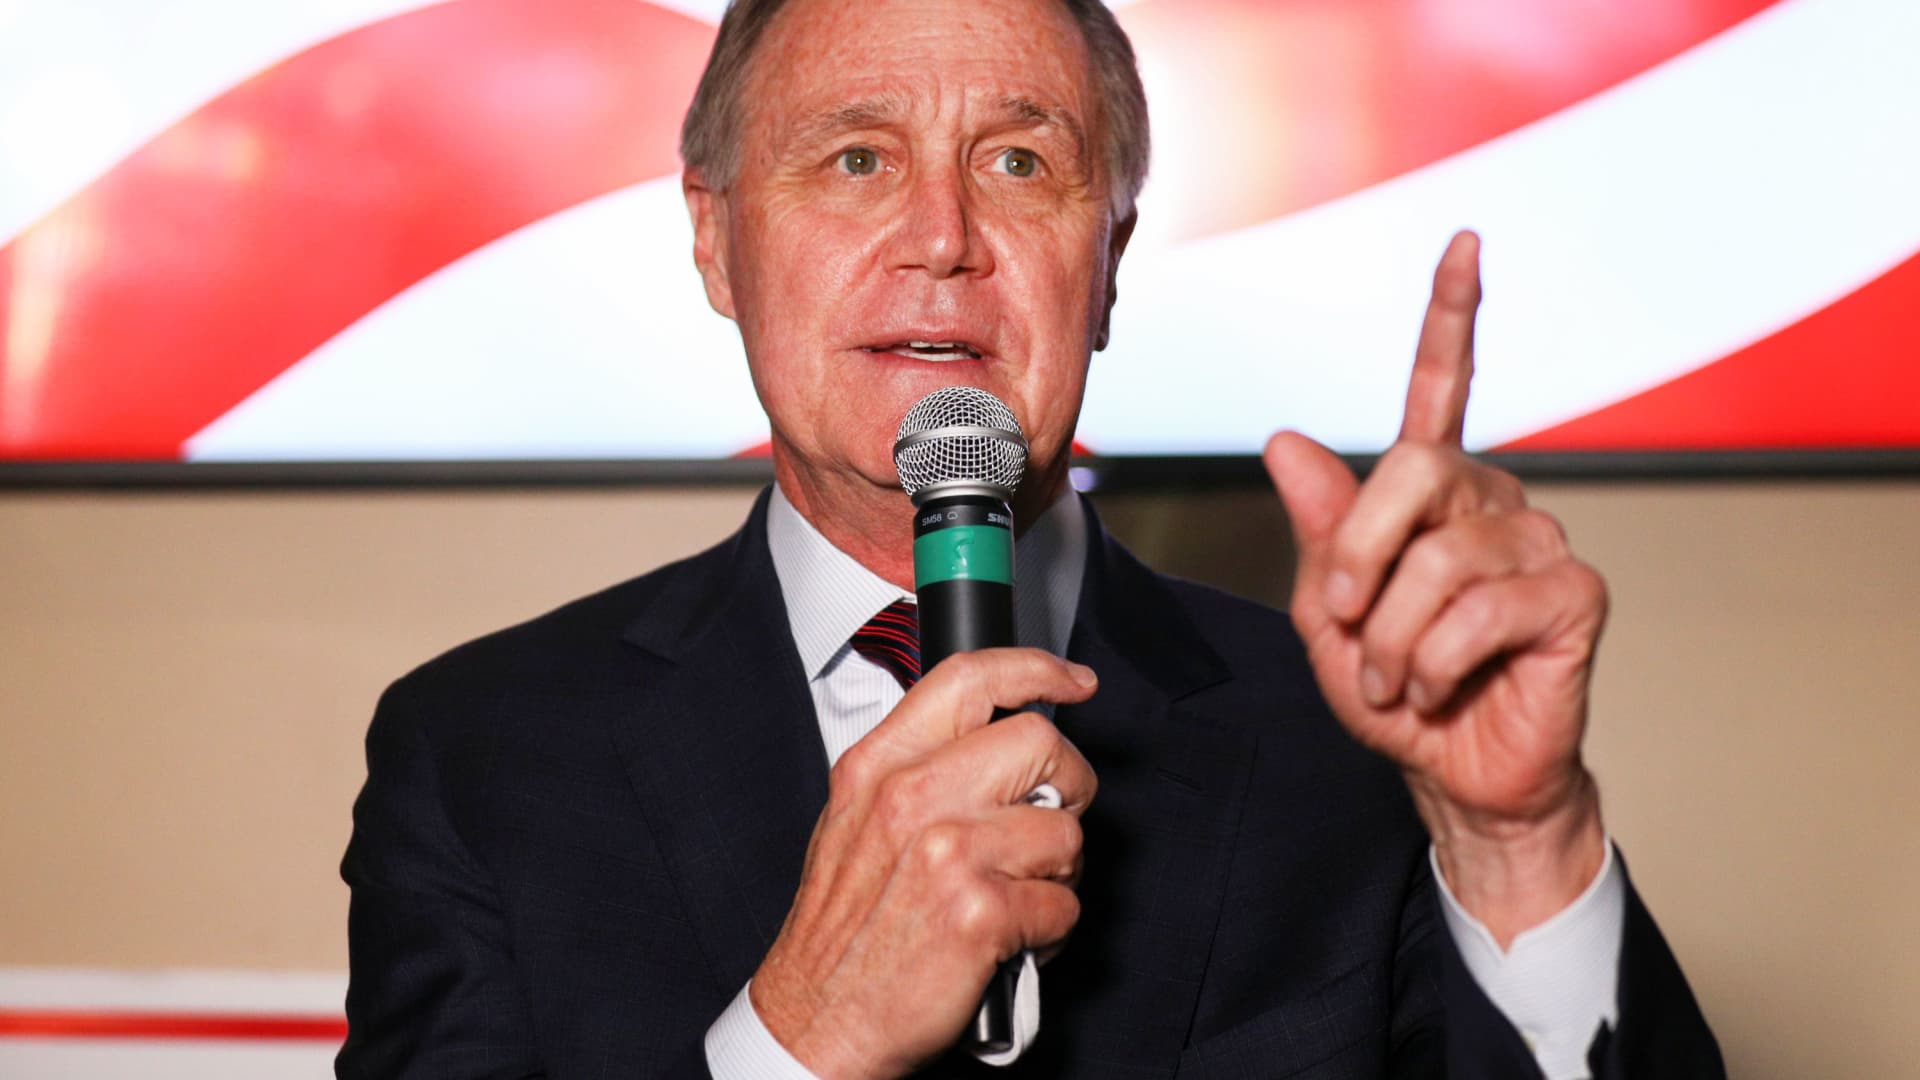 U.S. Senator David Perdue speaks during a campaign event in Cumming, Georgia, November 13, 2020.